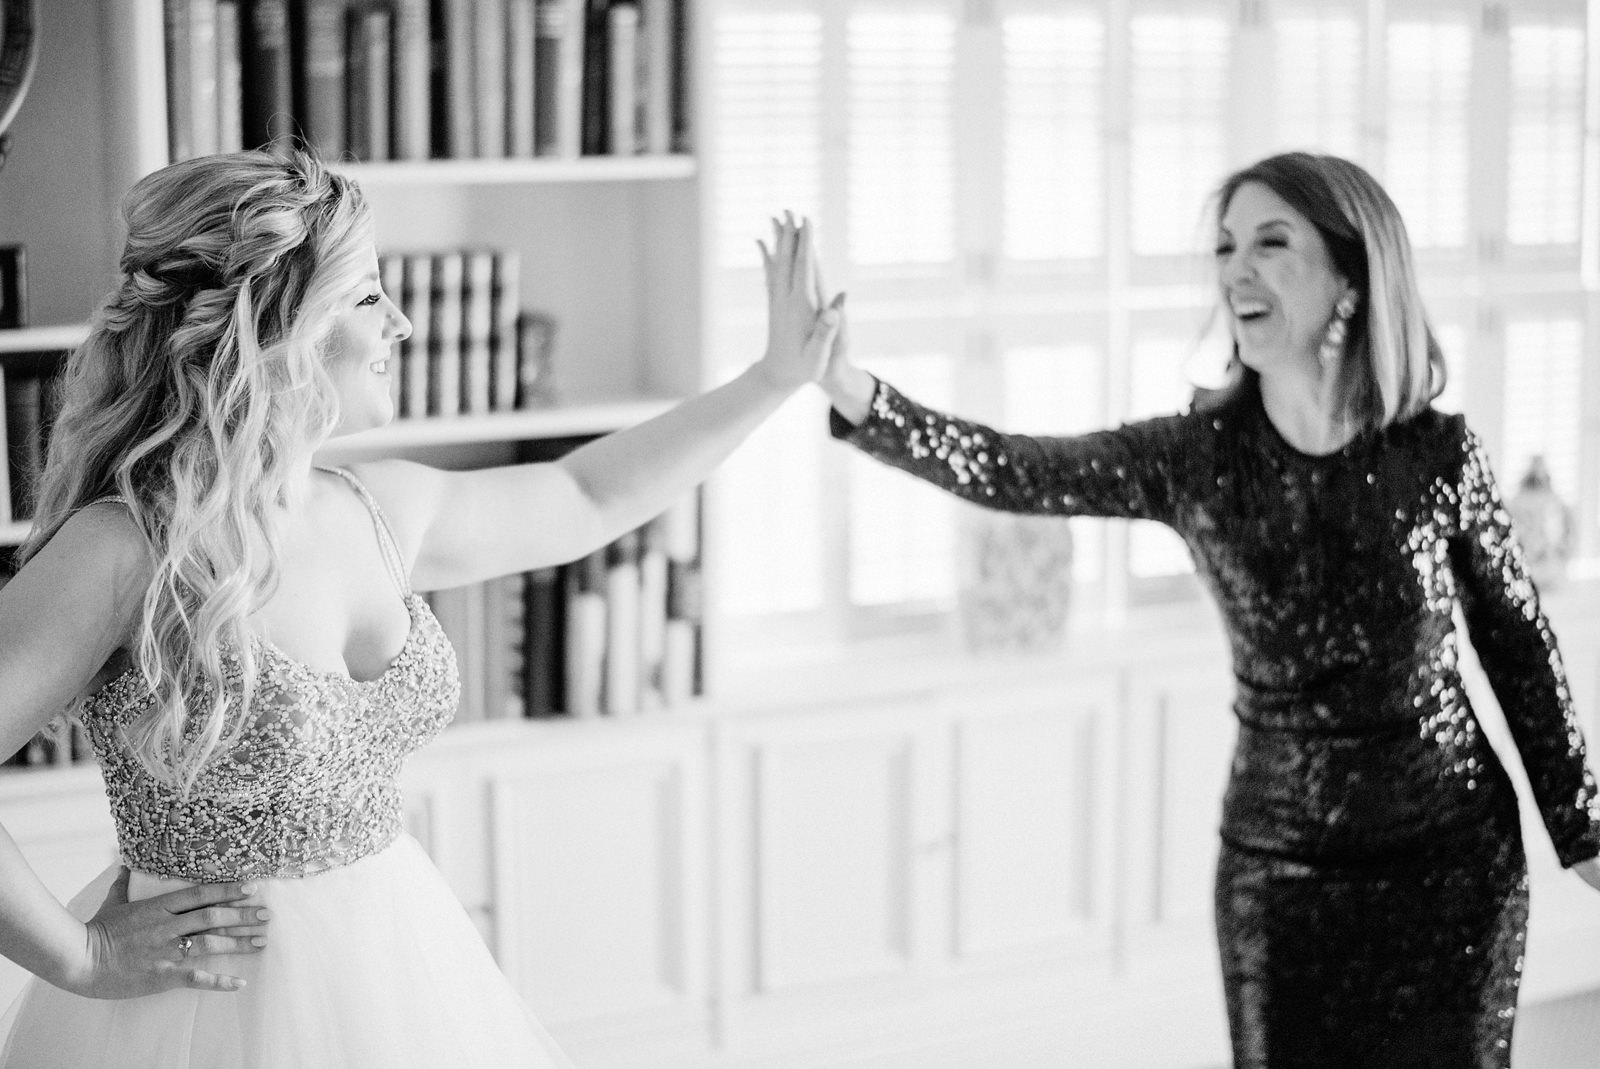 168-bride-and-her-mother-high-fiving-by-washington-documentary-photographer.jpg